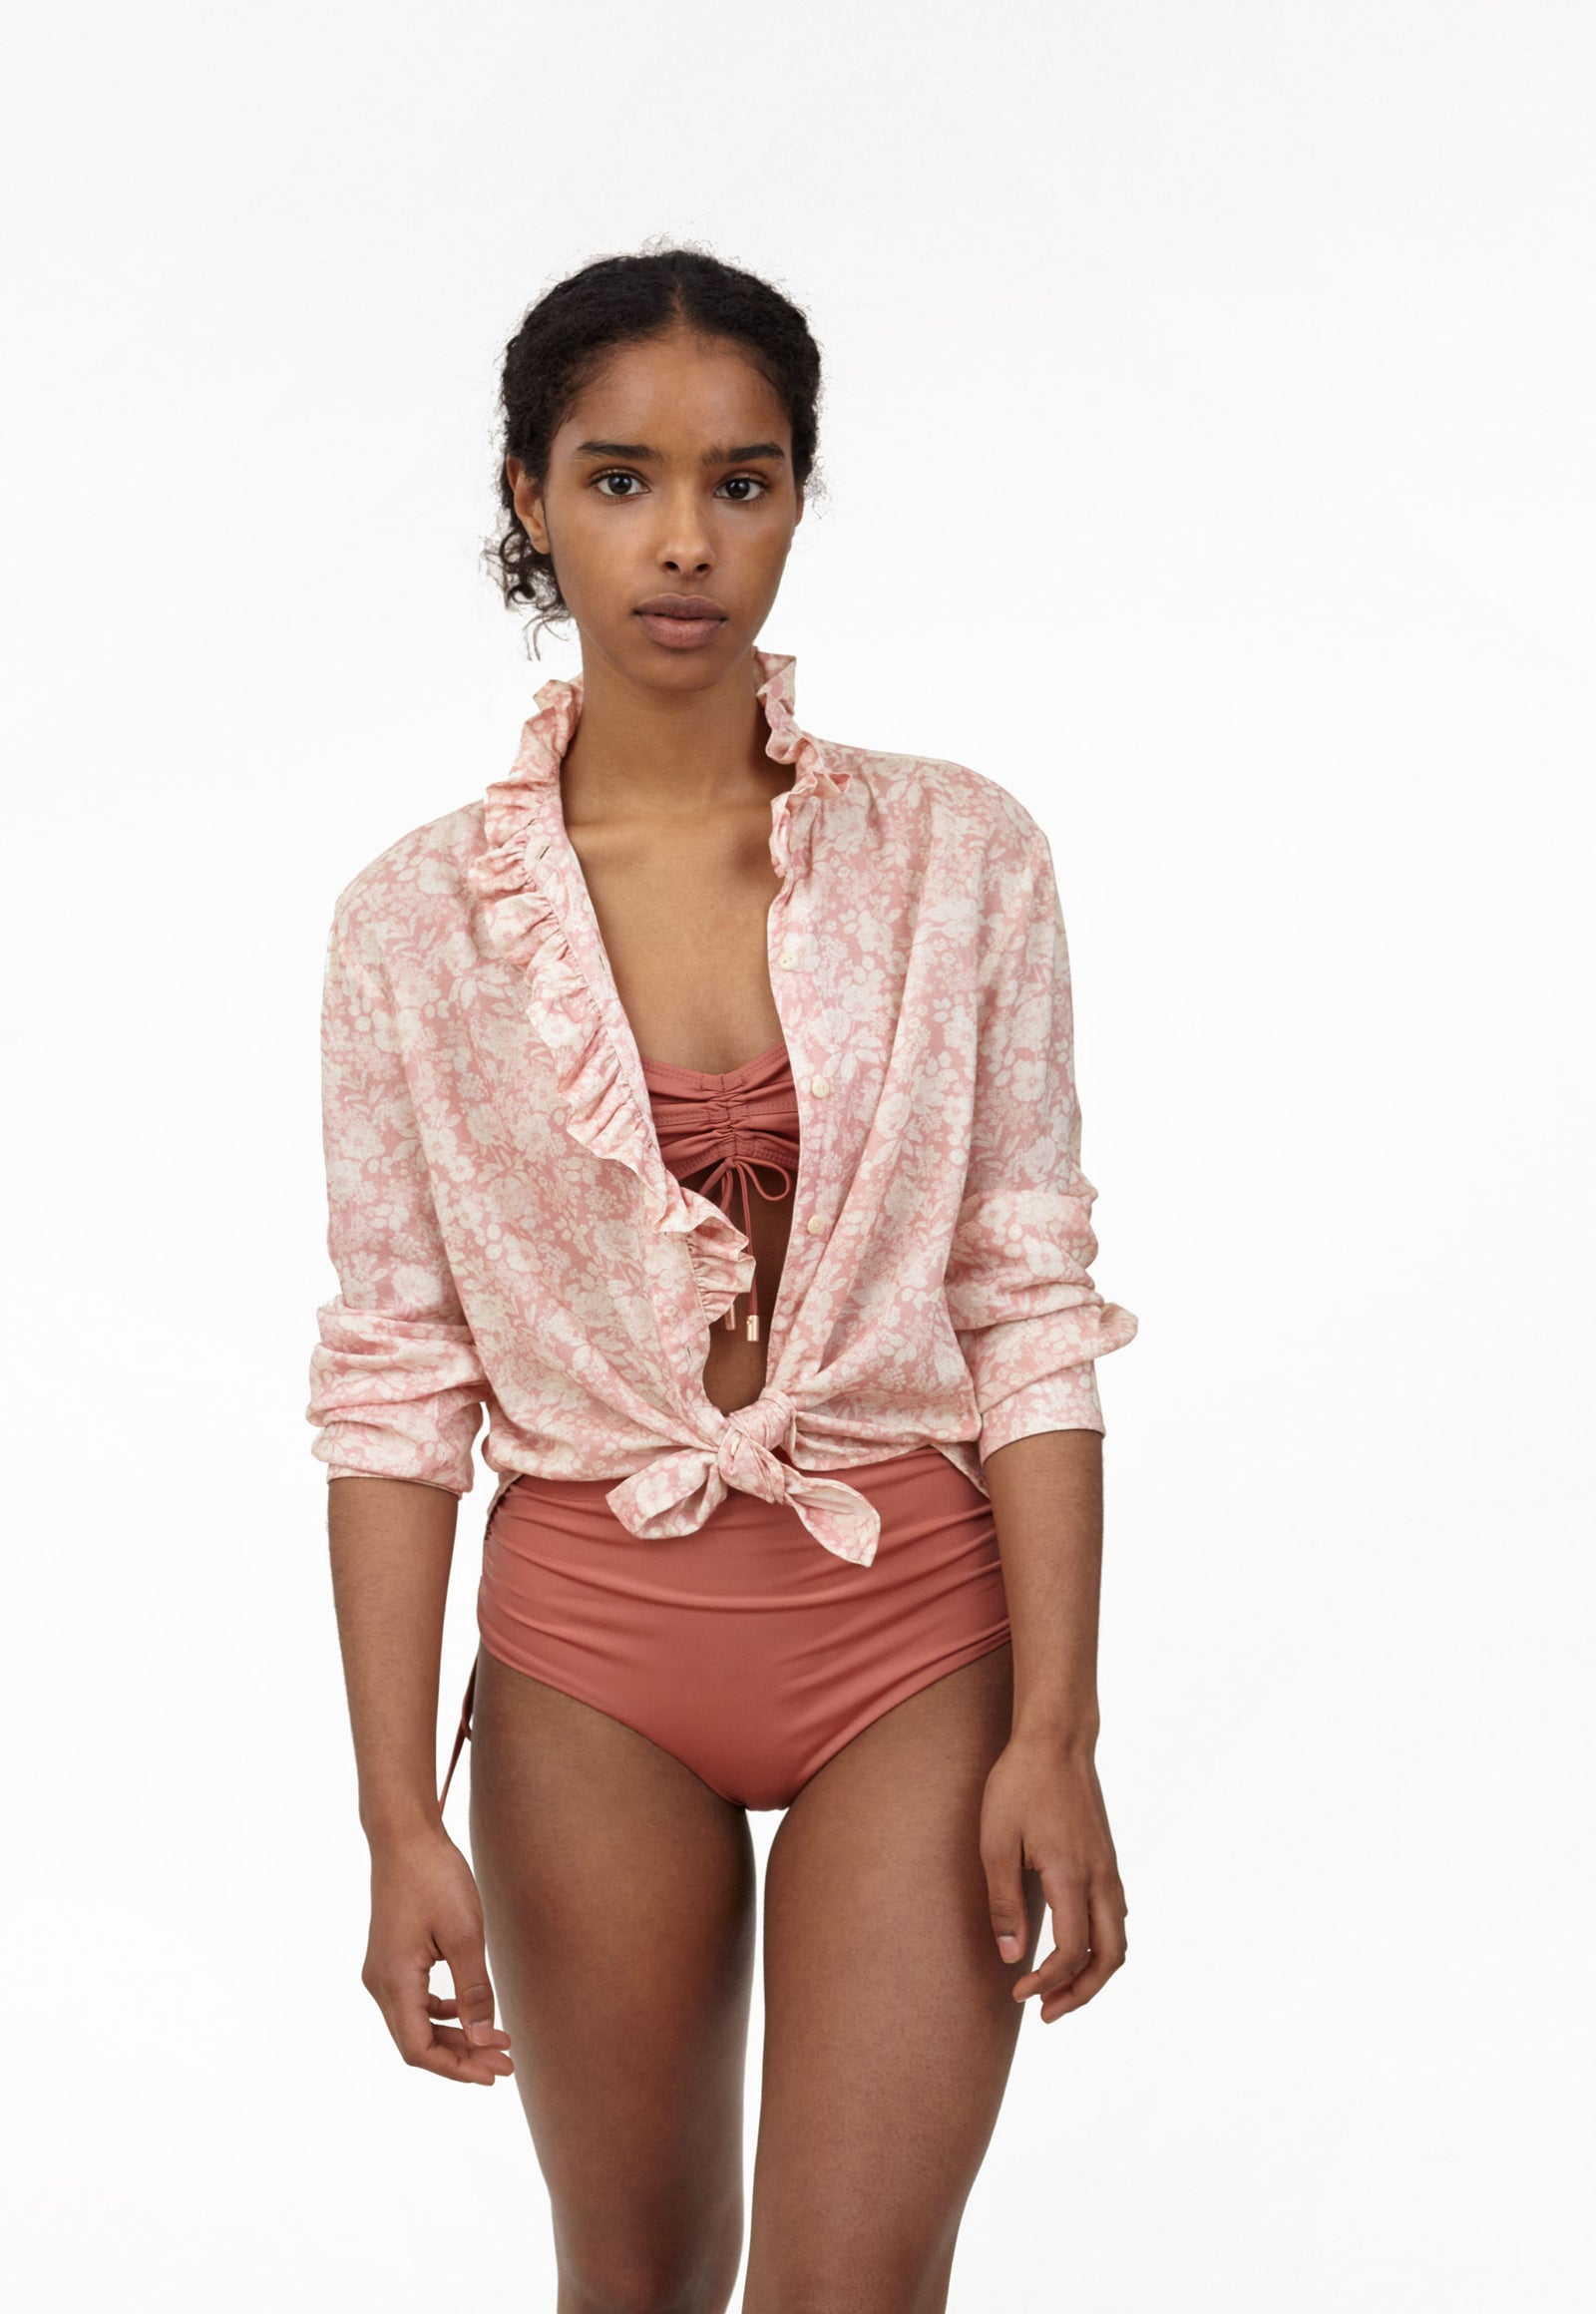 6 Shore Road Sea Breeze Beach Shirt Women's Pink Floral Shirt in XS, S, M, L - Summer 2018 Collection